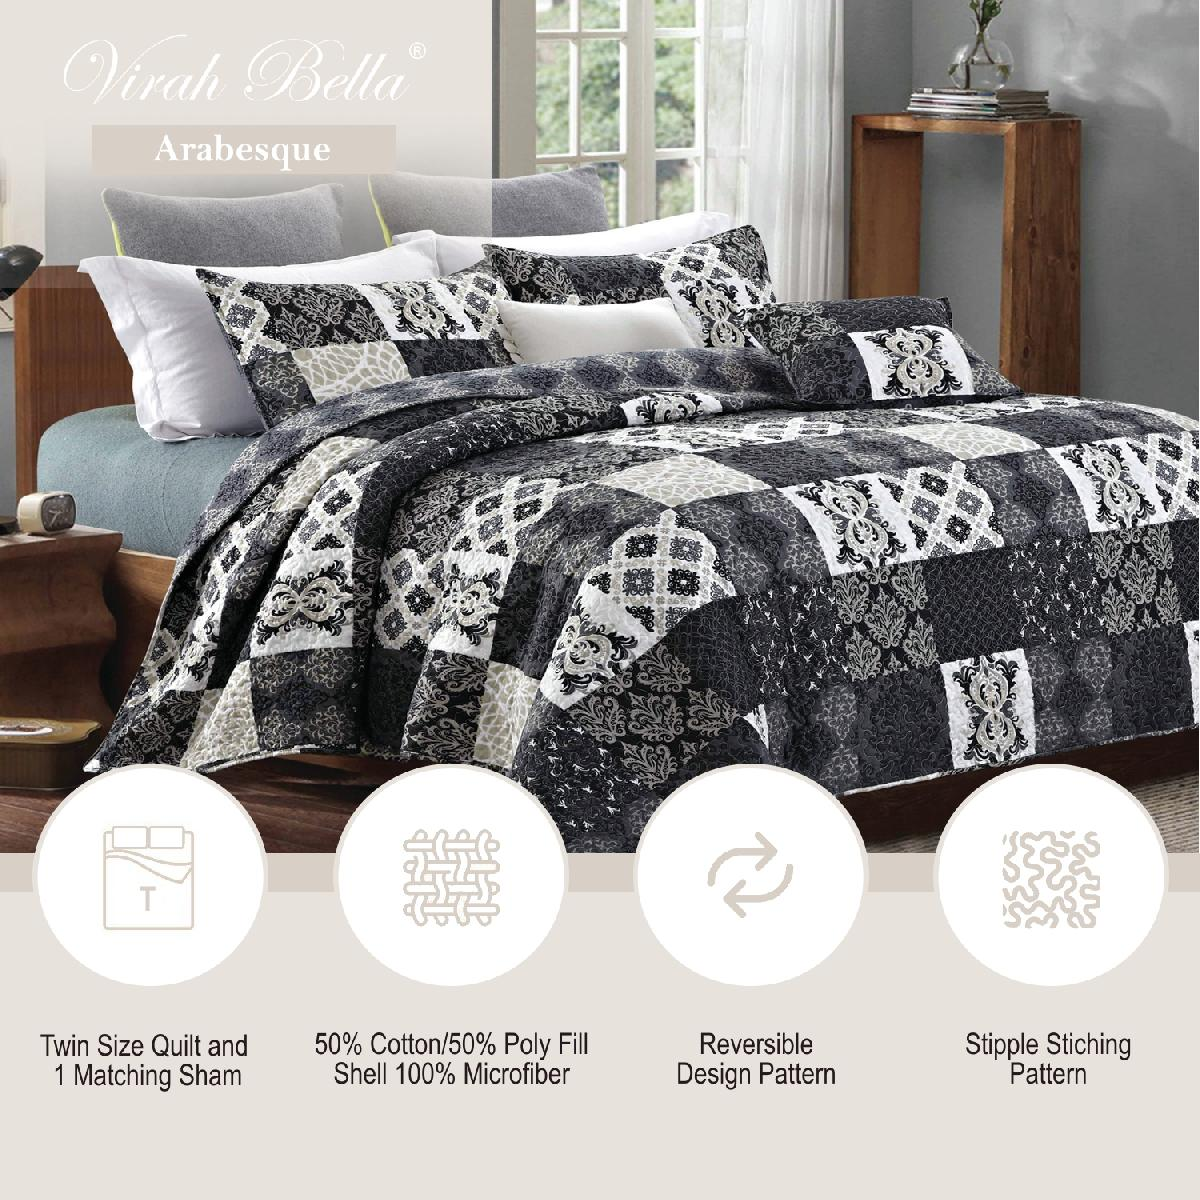 Arabesque Printed Quilt Set